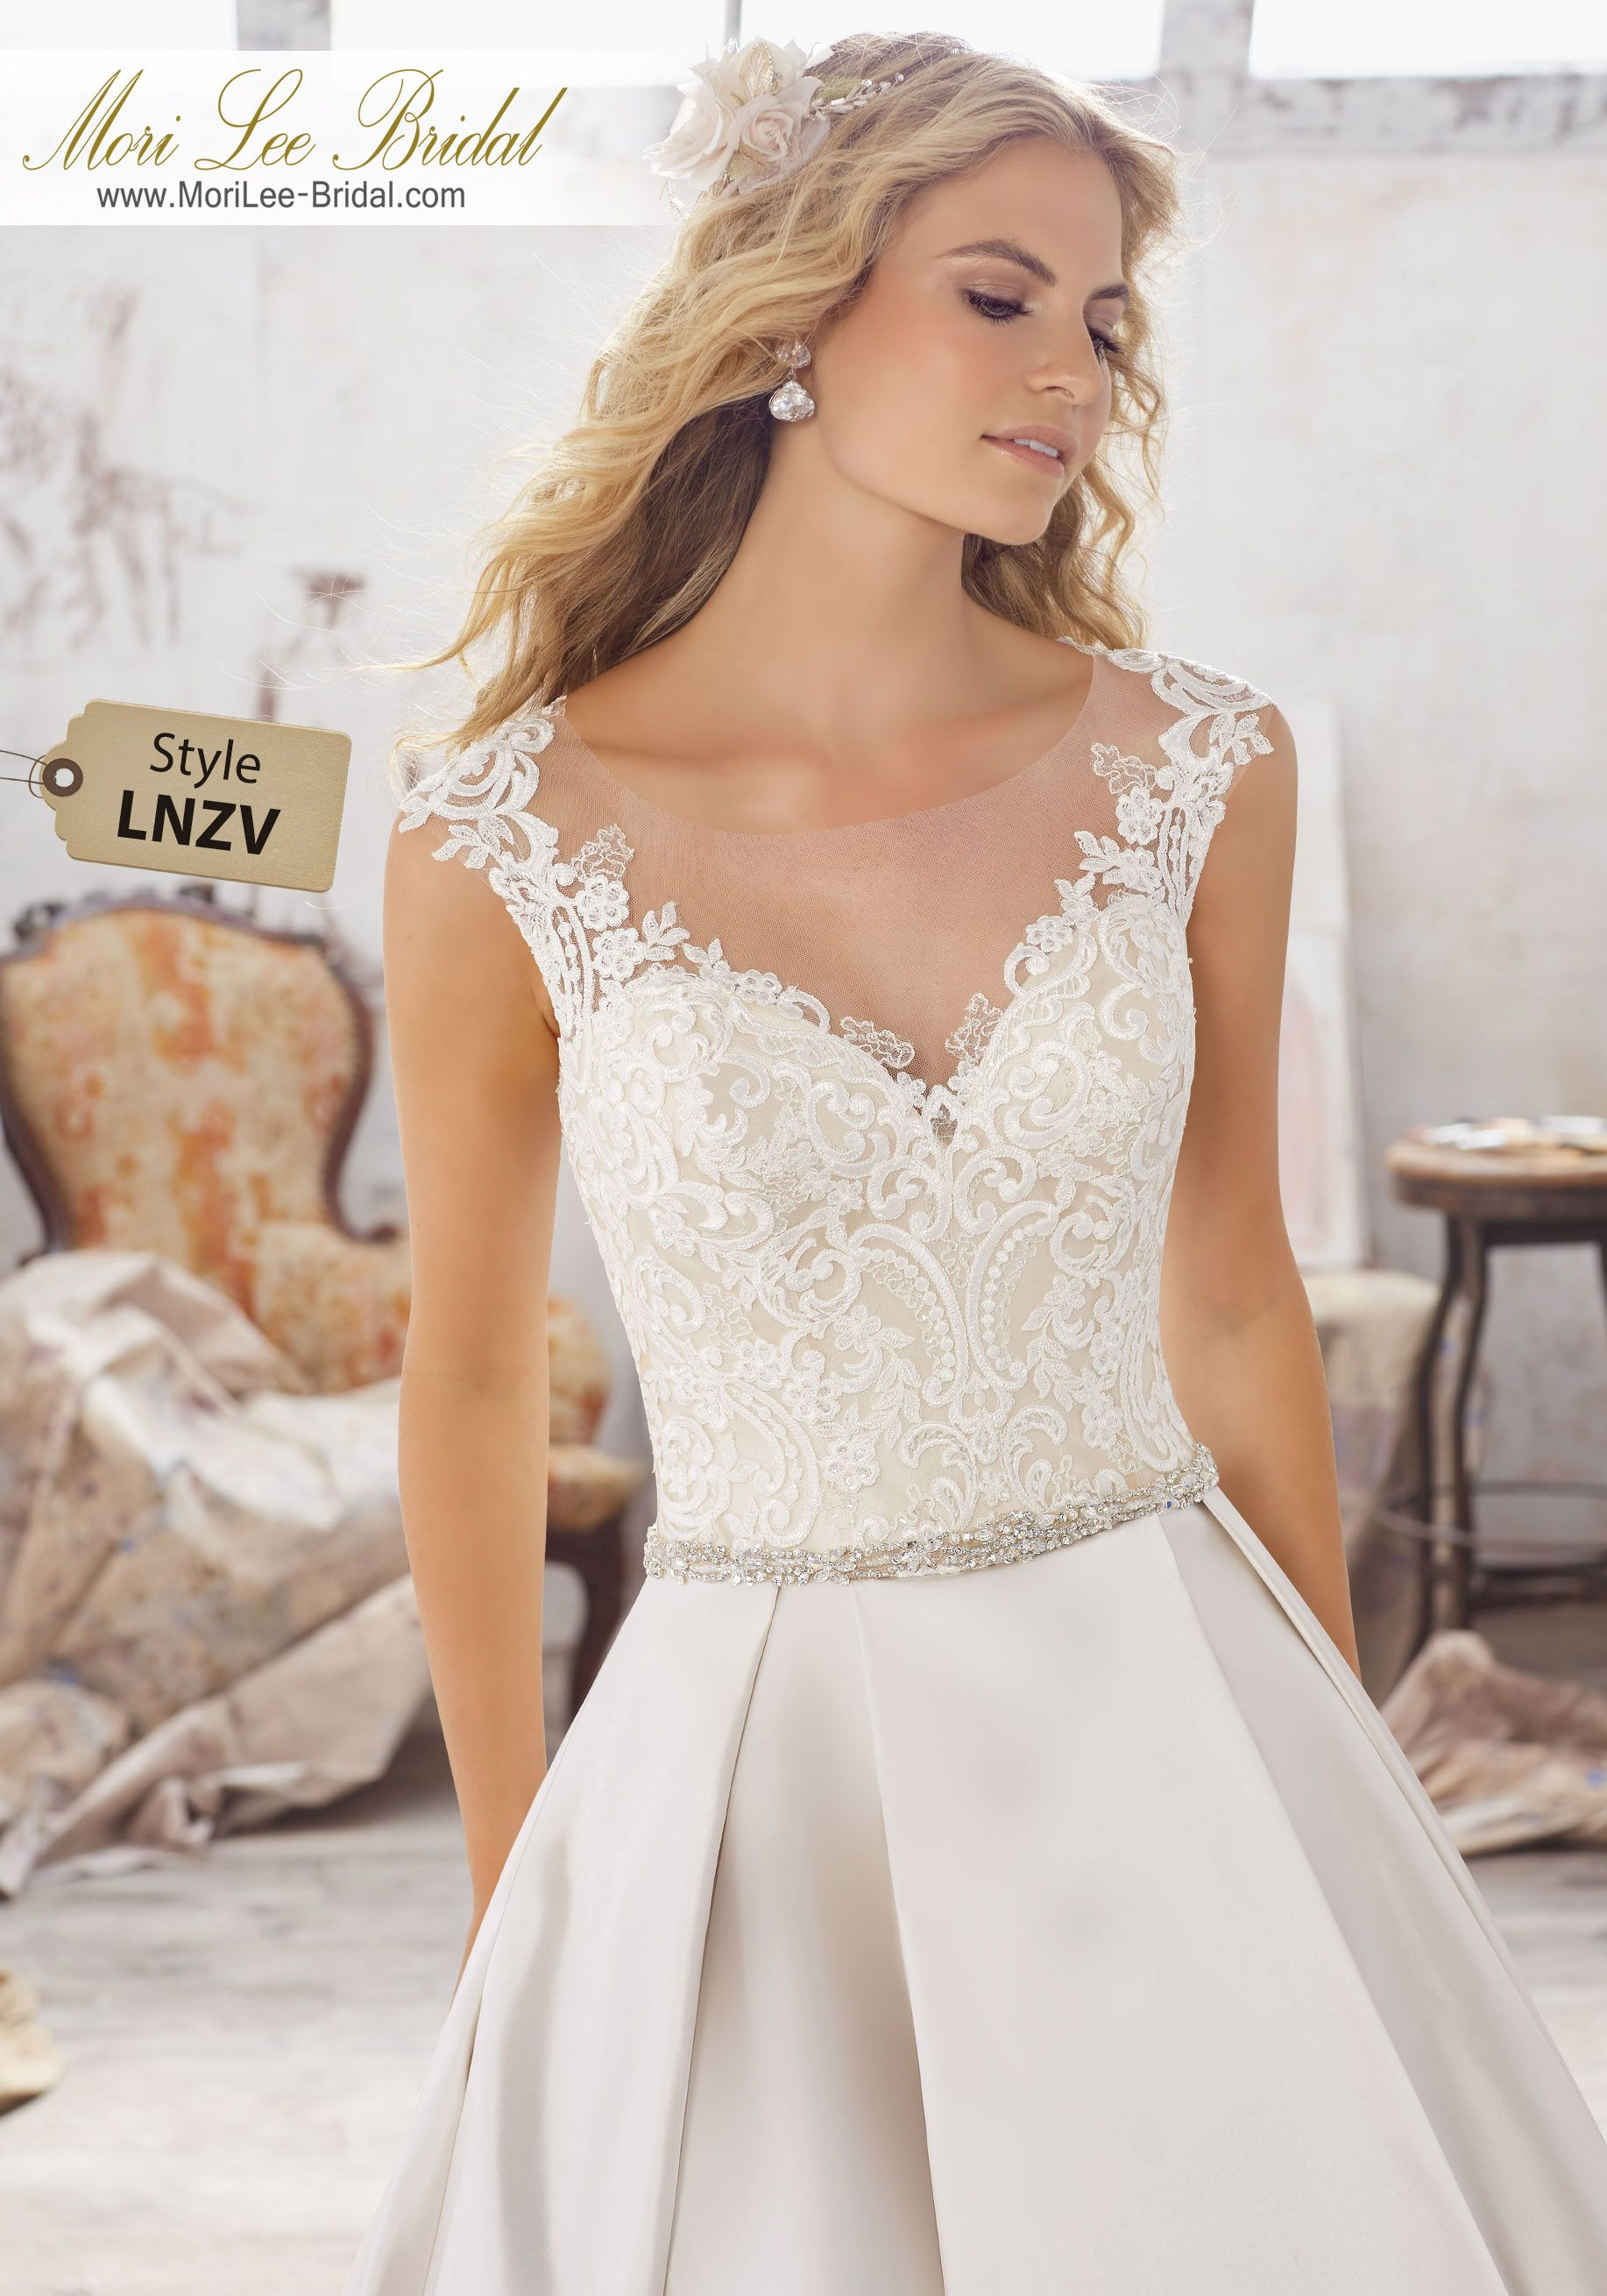 757094c51299 Style LNZV Maclaine Wedding Dress Beautiful A-Line Wedding Dress Features  Frosted